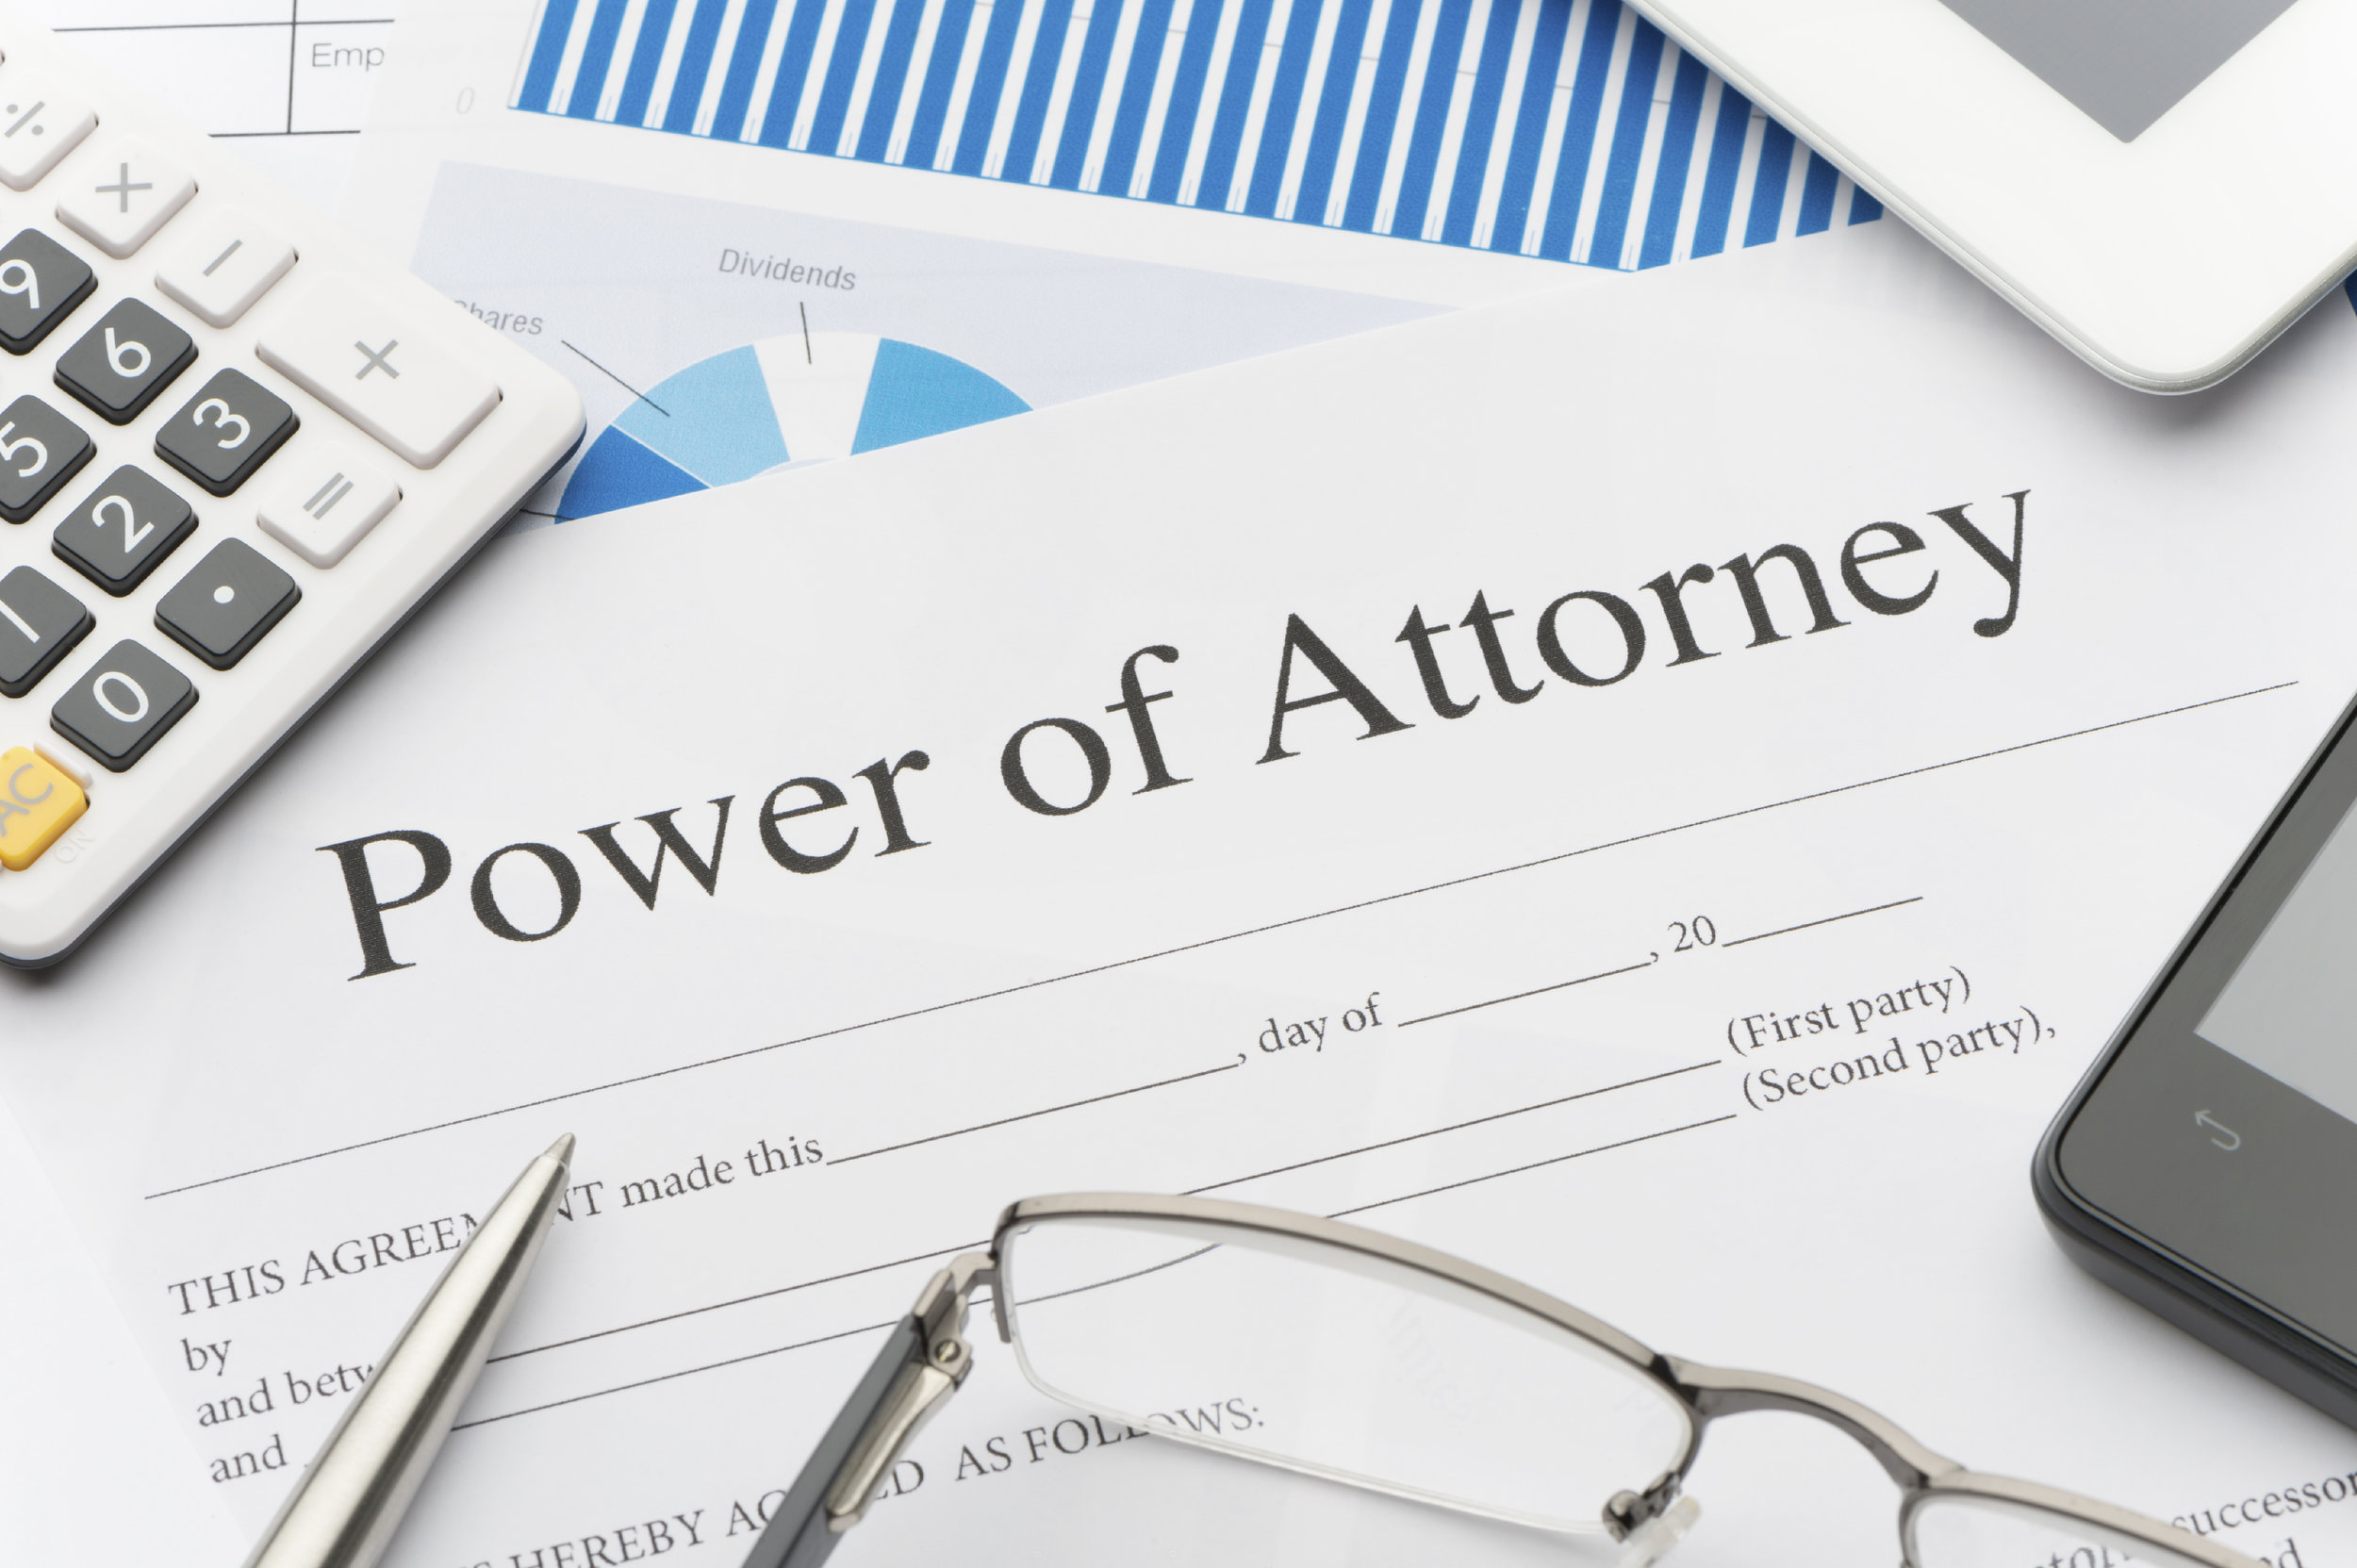 Powers of Attorney Renfrew and Glasgow